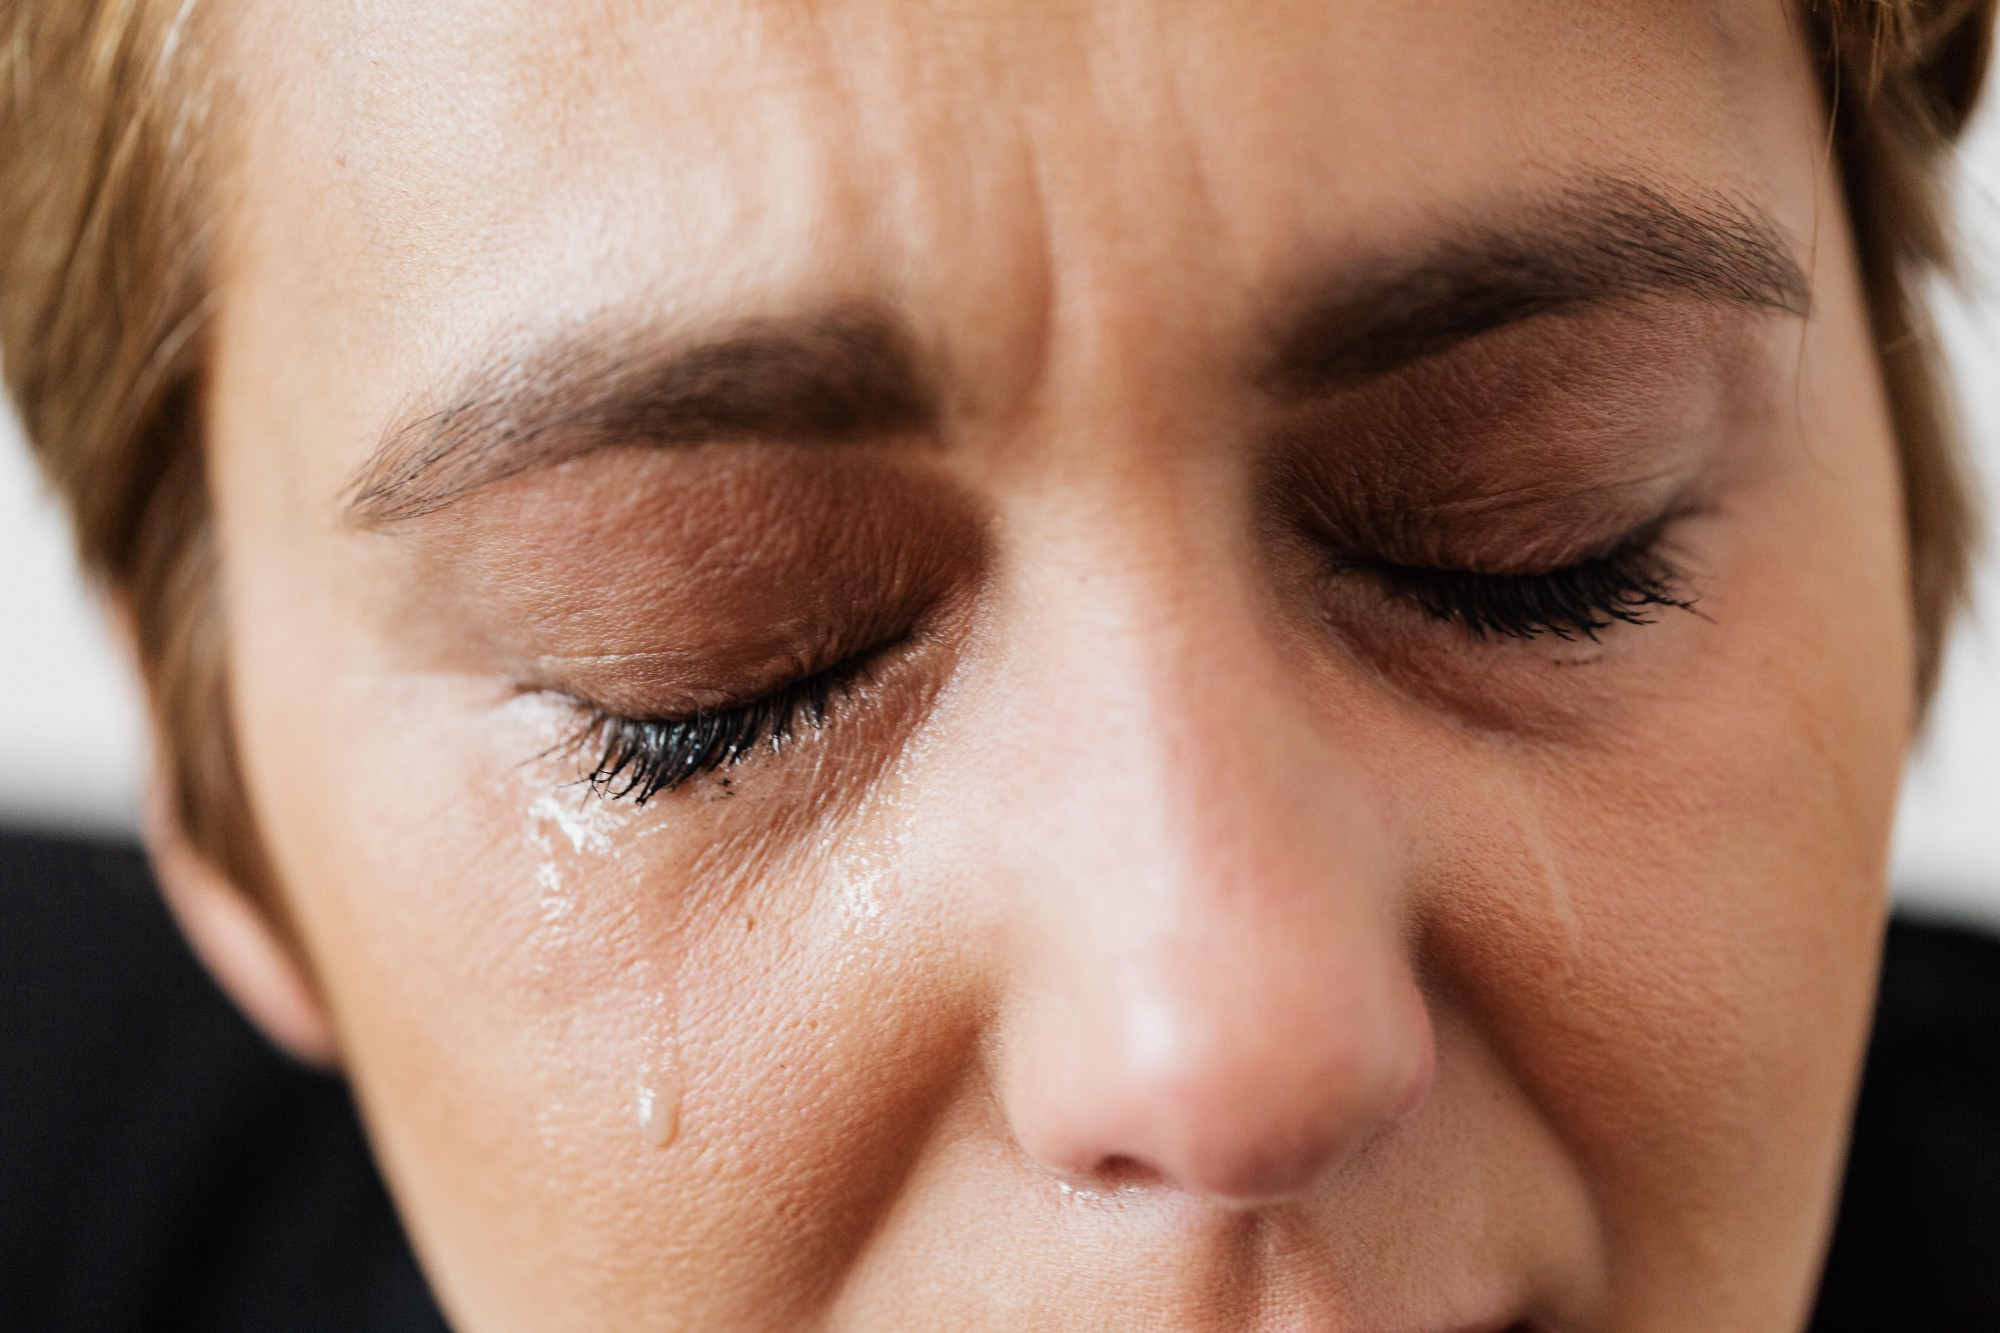 Close-up of woman's face with tears.